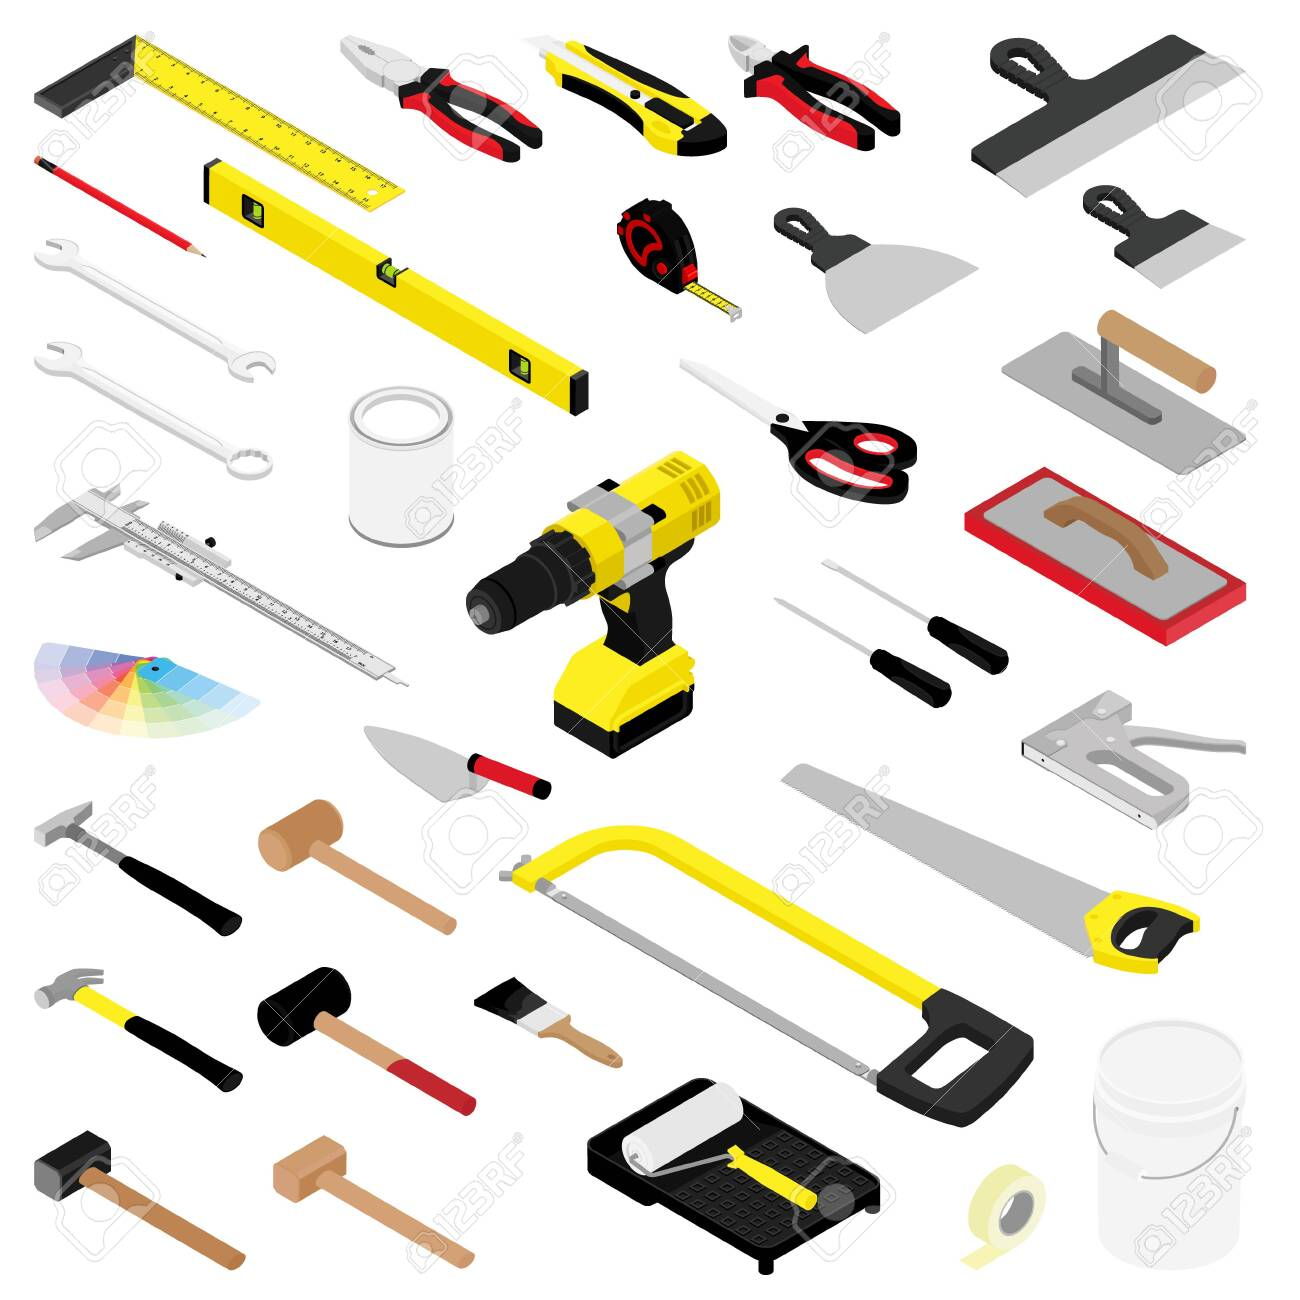 Collection of diy hand tools isolated on white background isometric view - 154537978